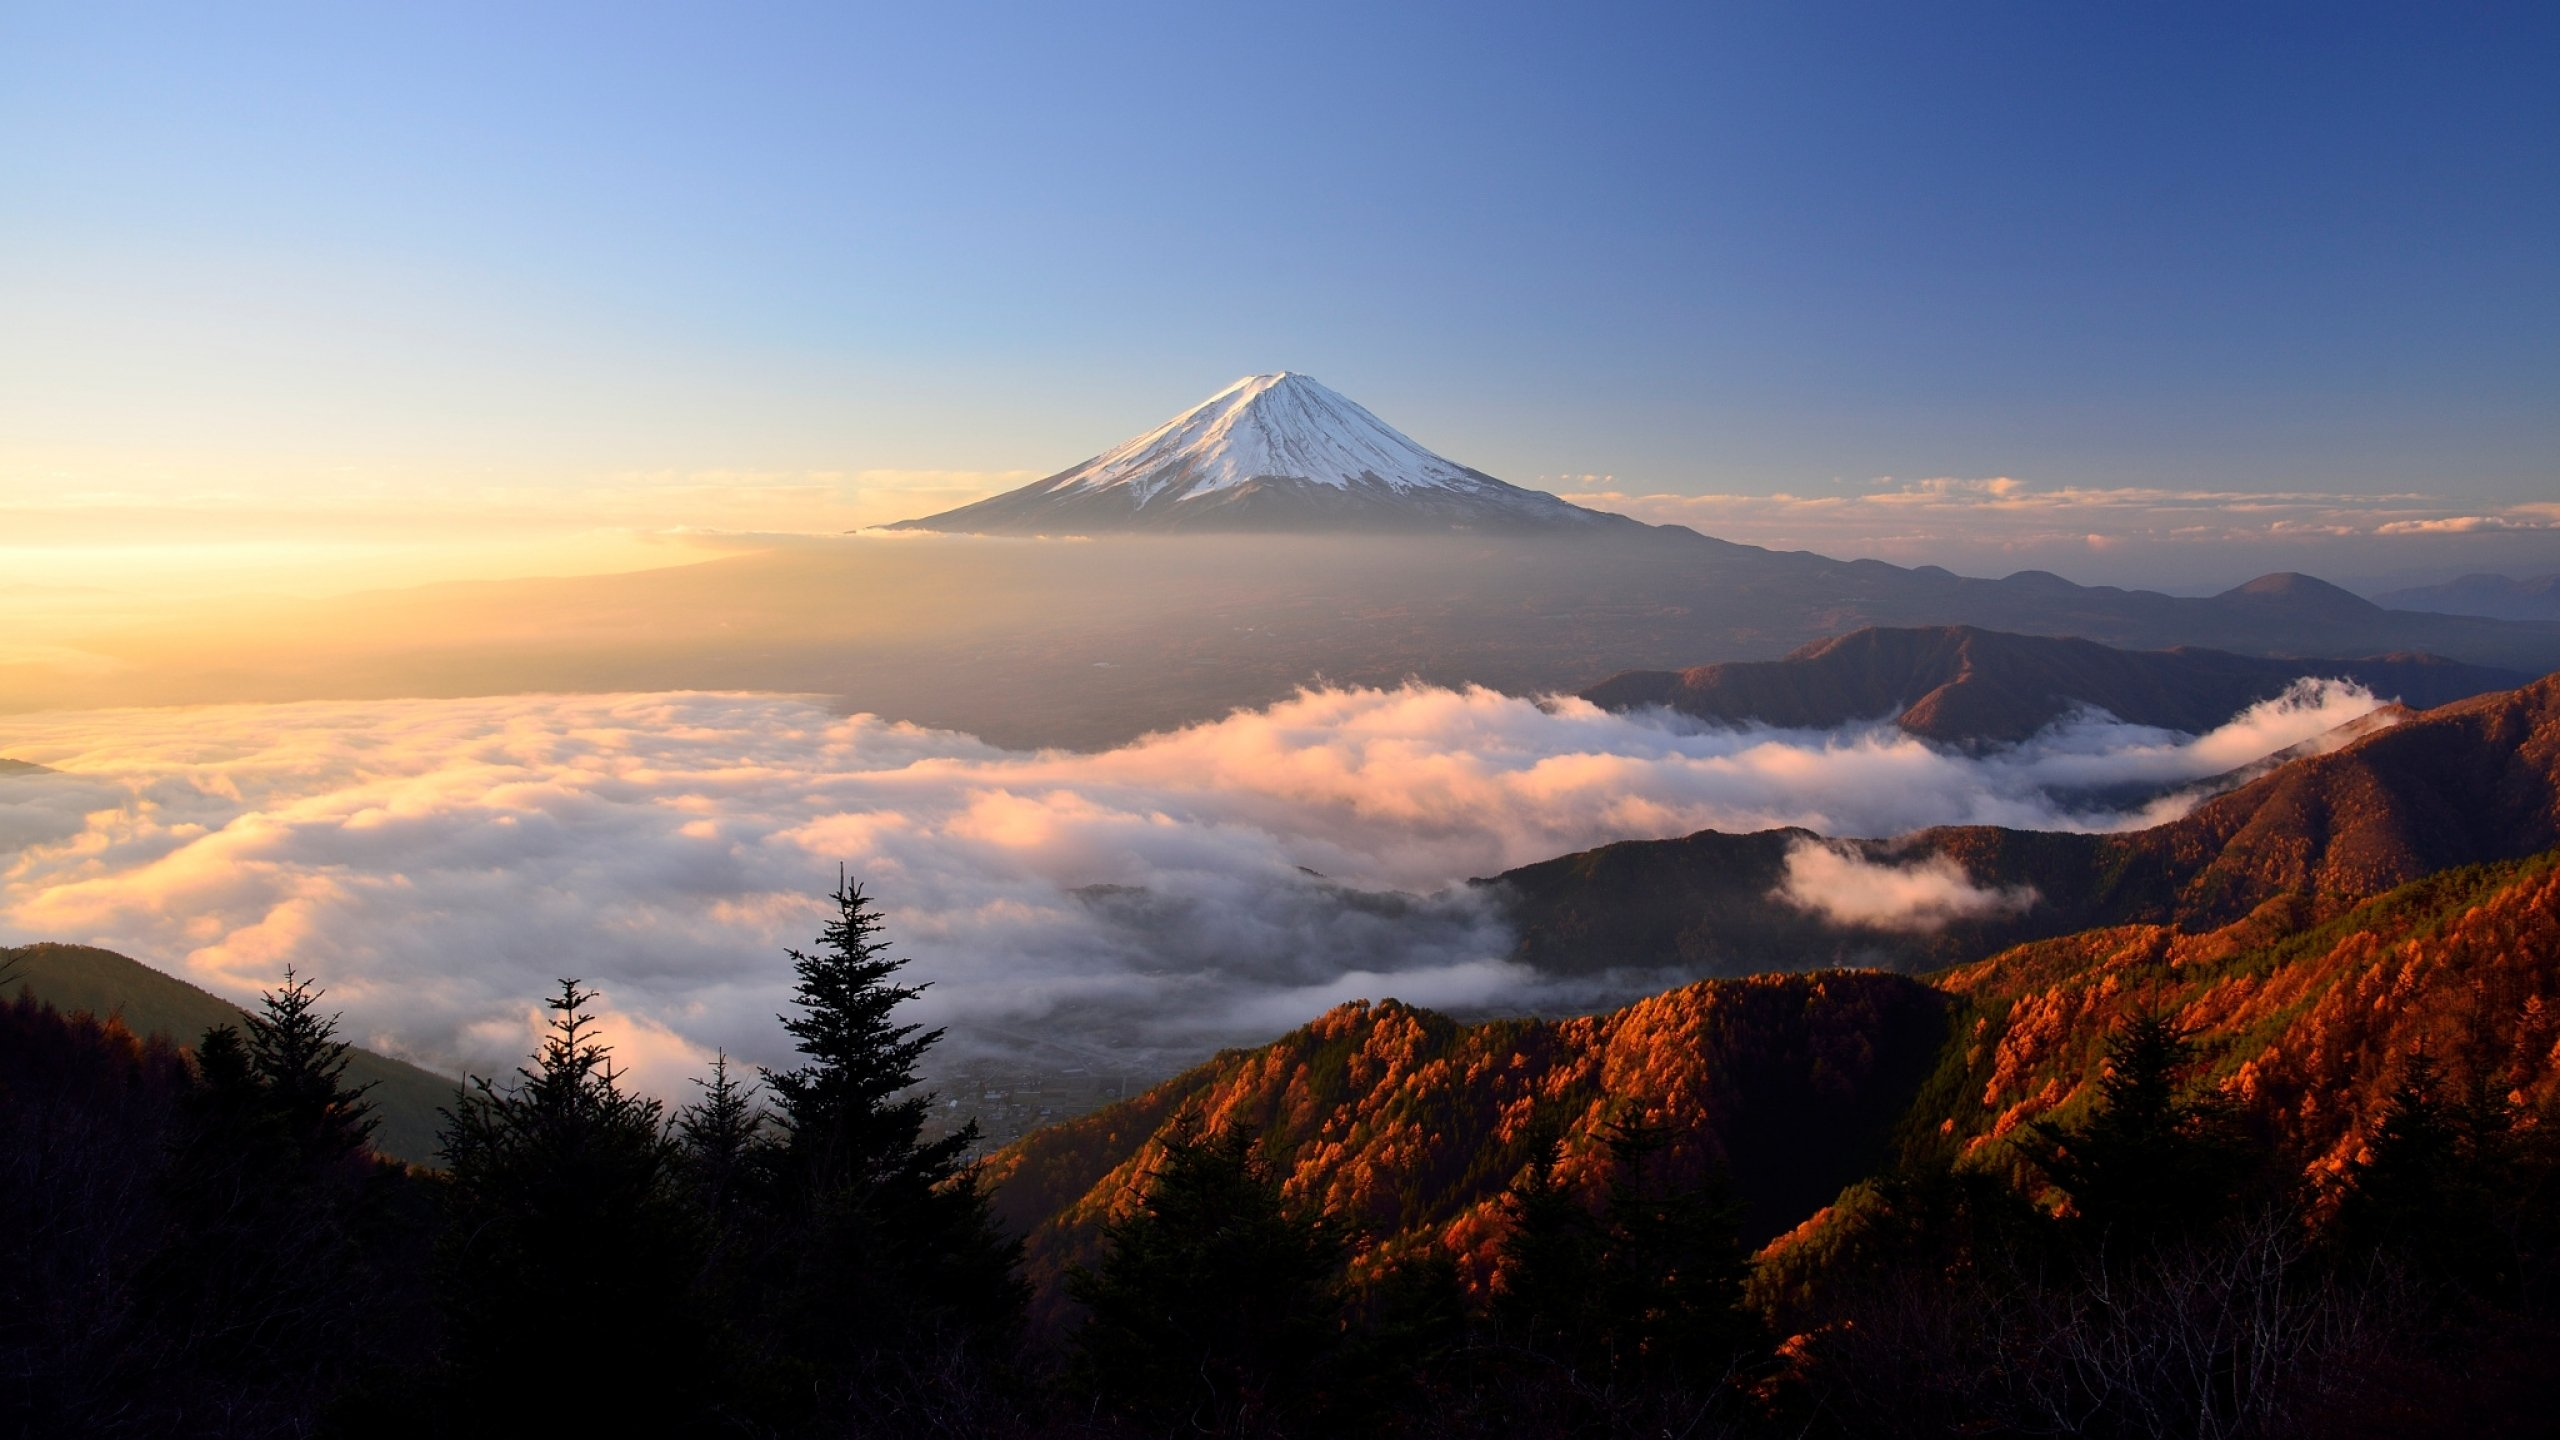 15 hd mount fuji japan wallpapers - 1366x768 is 720p or 1080p ...